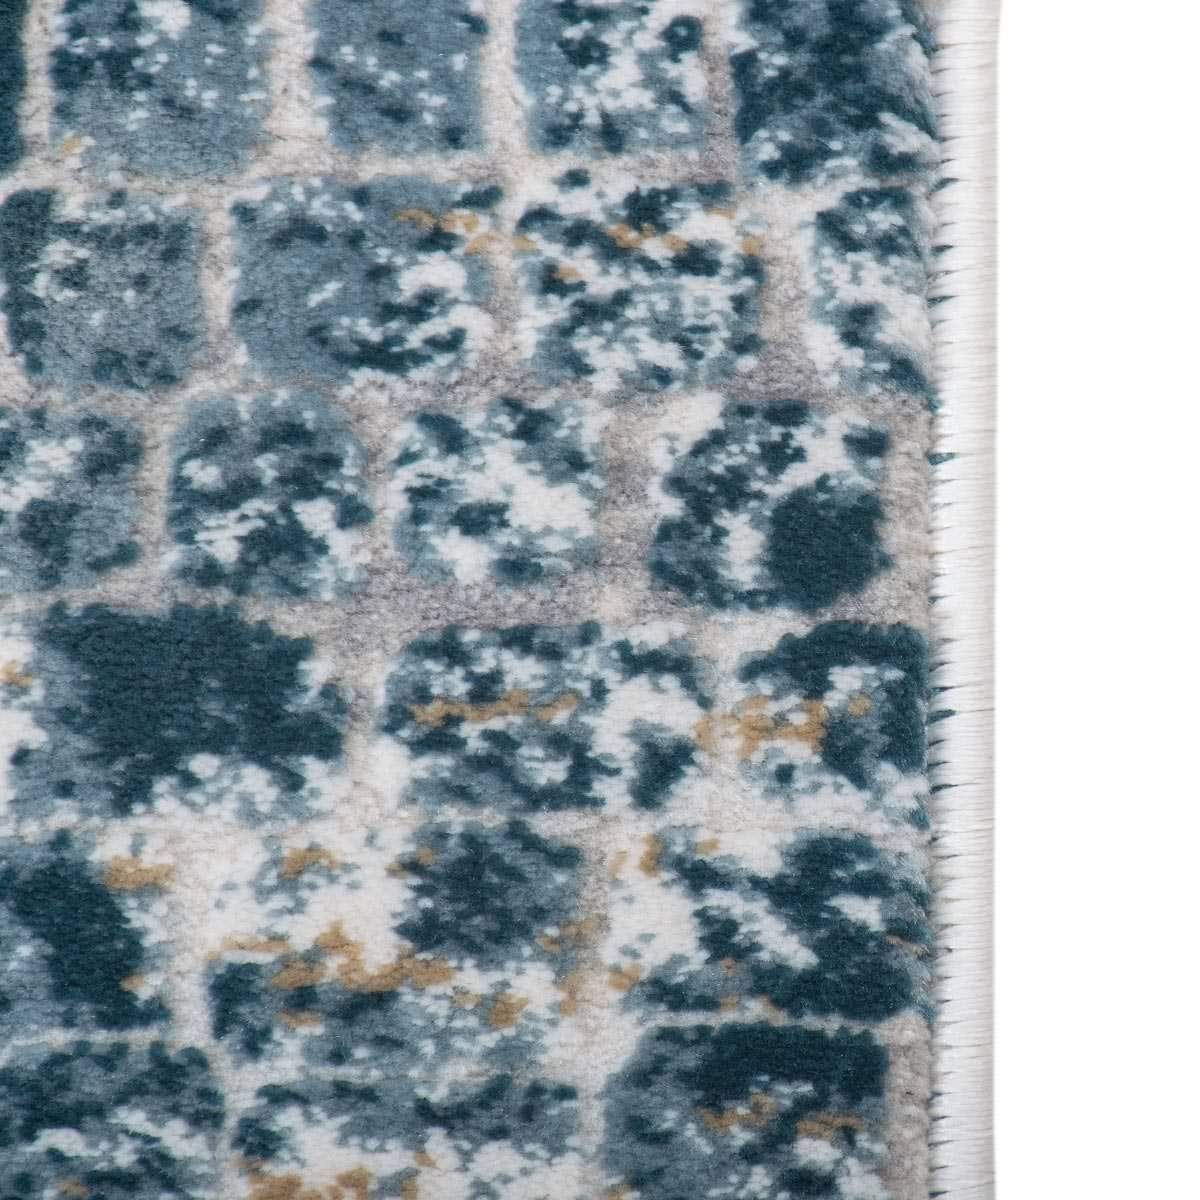 Madrid Rug 01 Blue 5